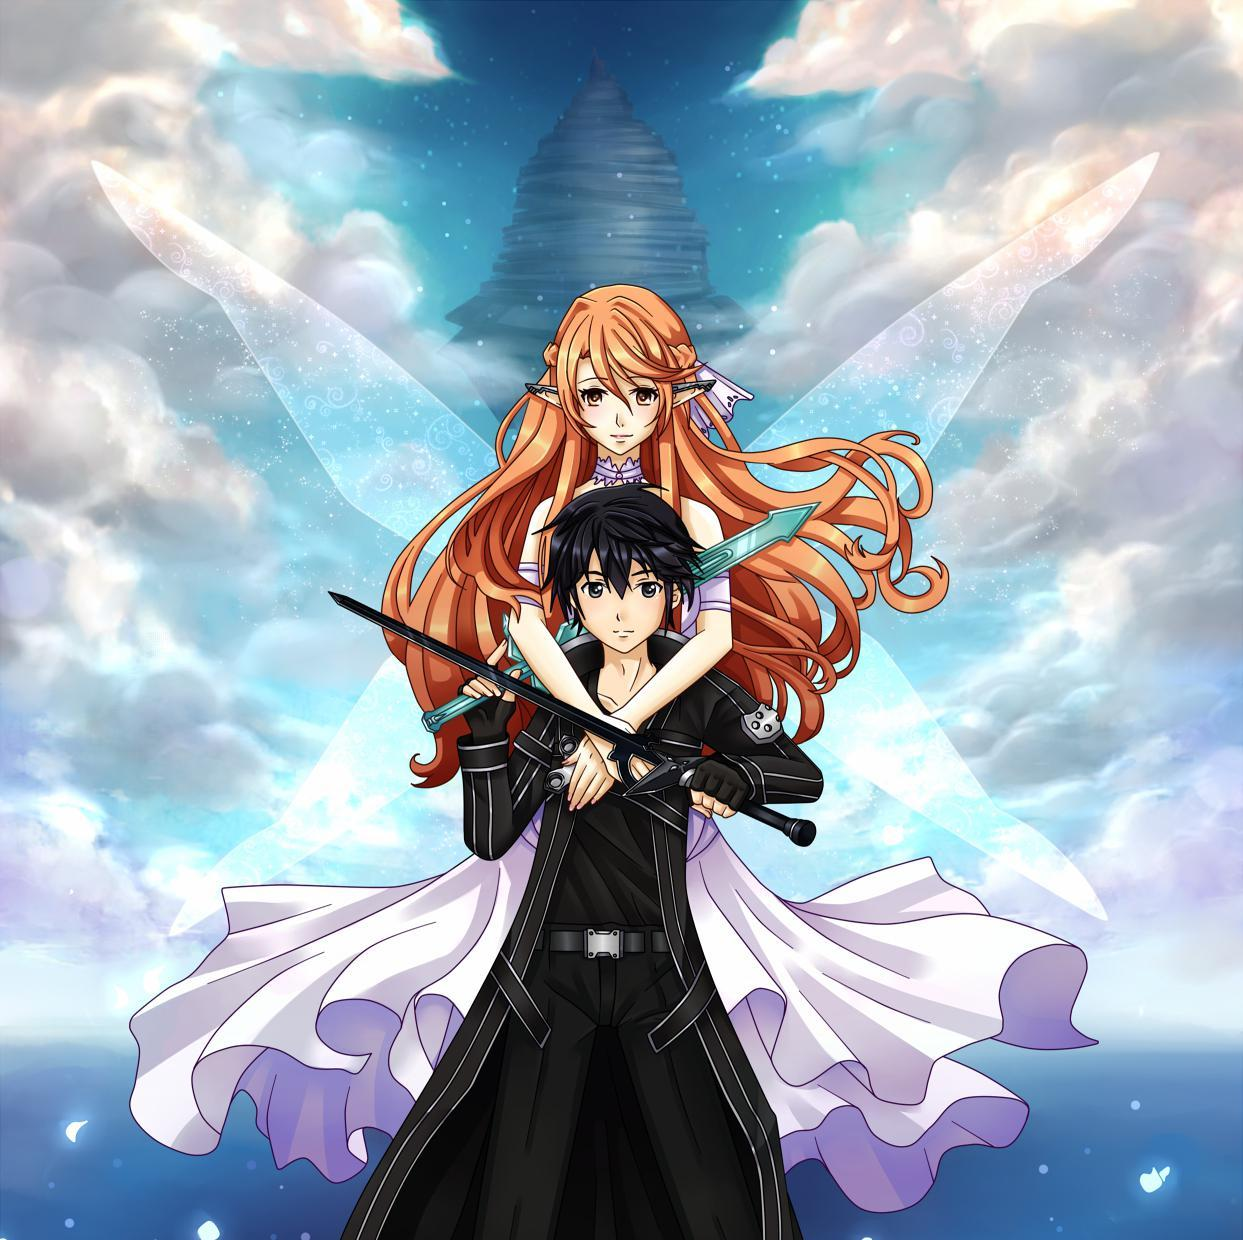 Foto Kirito Dan Asuna kirito and asuna wallpapers - wallpaper cave